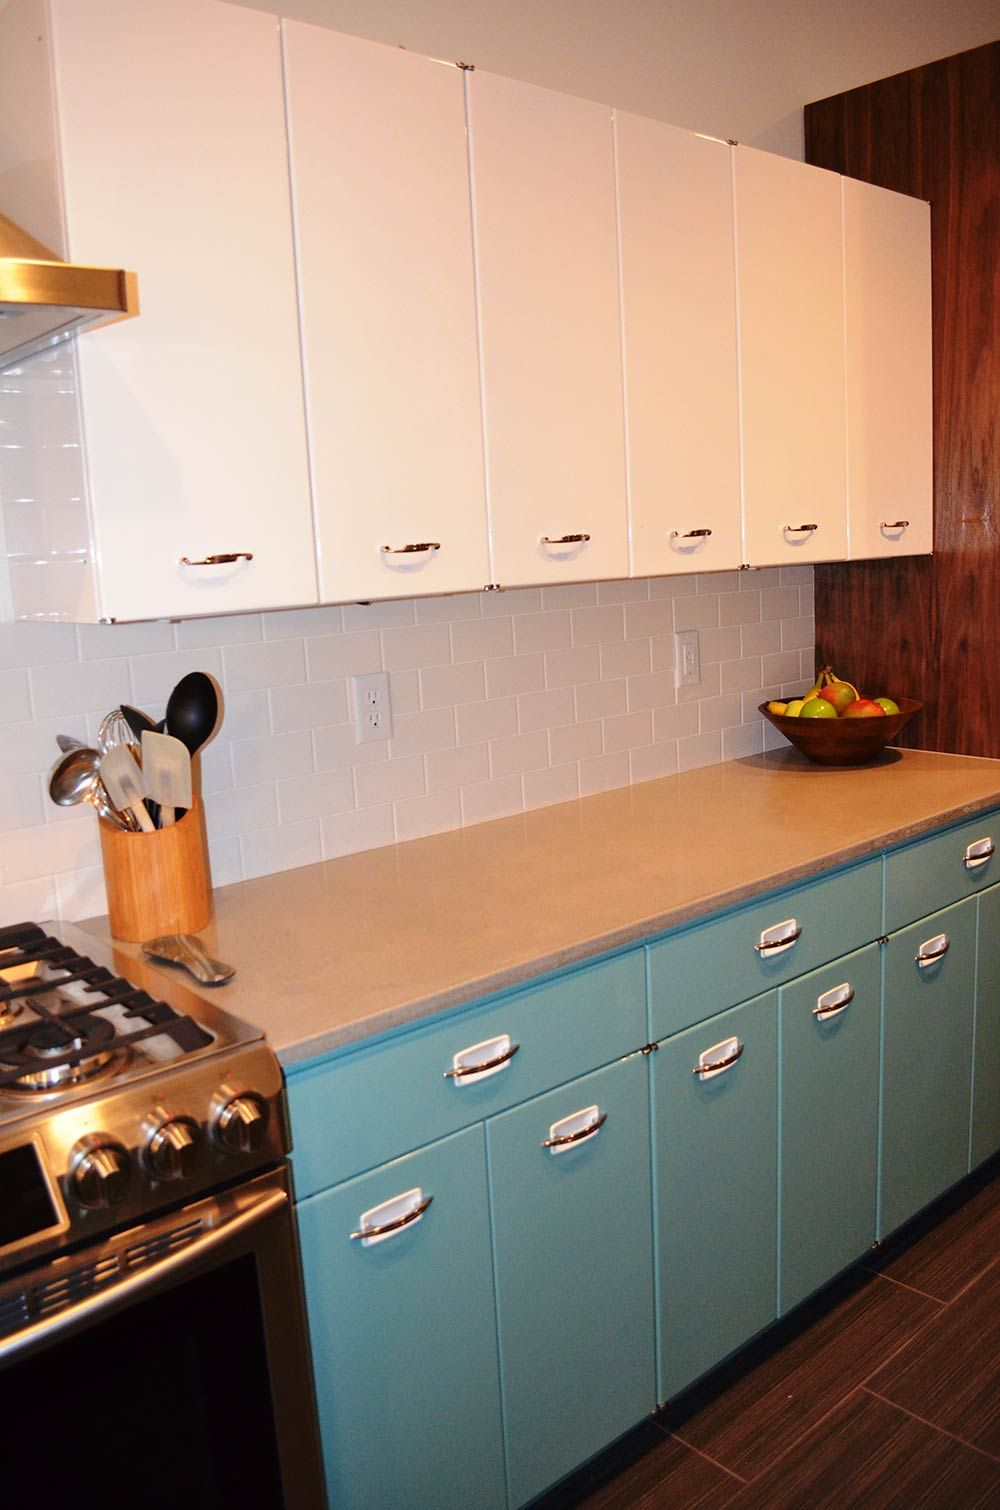 Sam Has A Great Experience With Powder Coating Her Vintage Steel Kitchen Cabinets In 2020 Vintage Kitchen Cabinets Aluminum Kitchen Cabinets Kitchen Cabinet Remodel